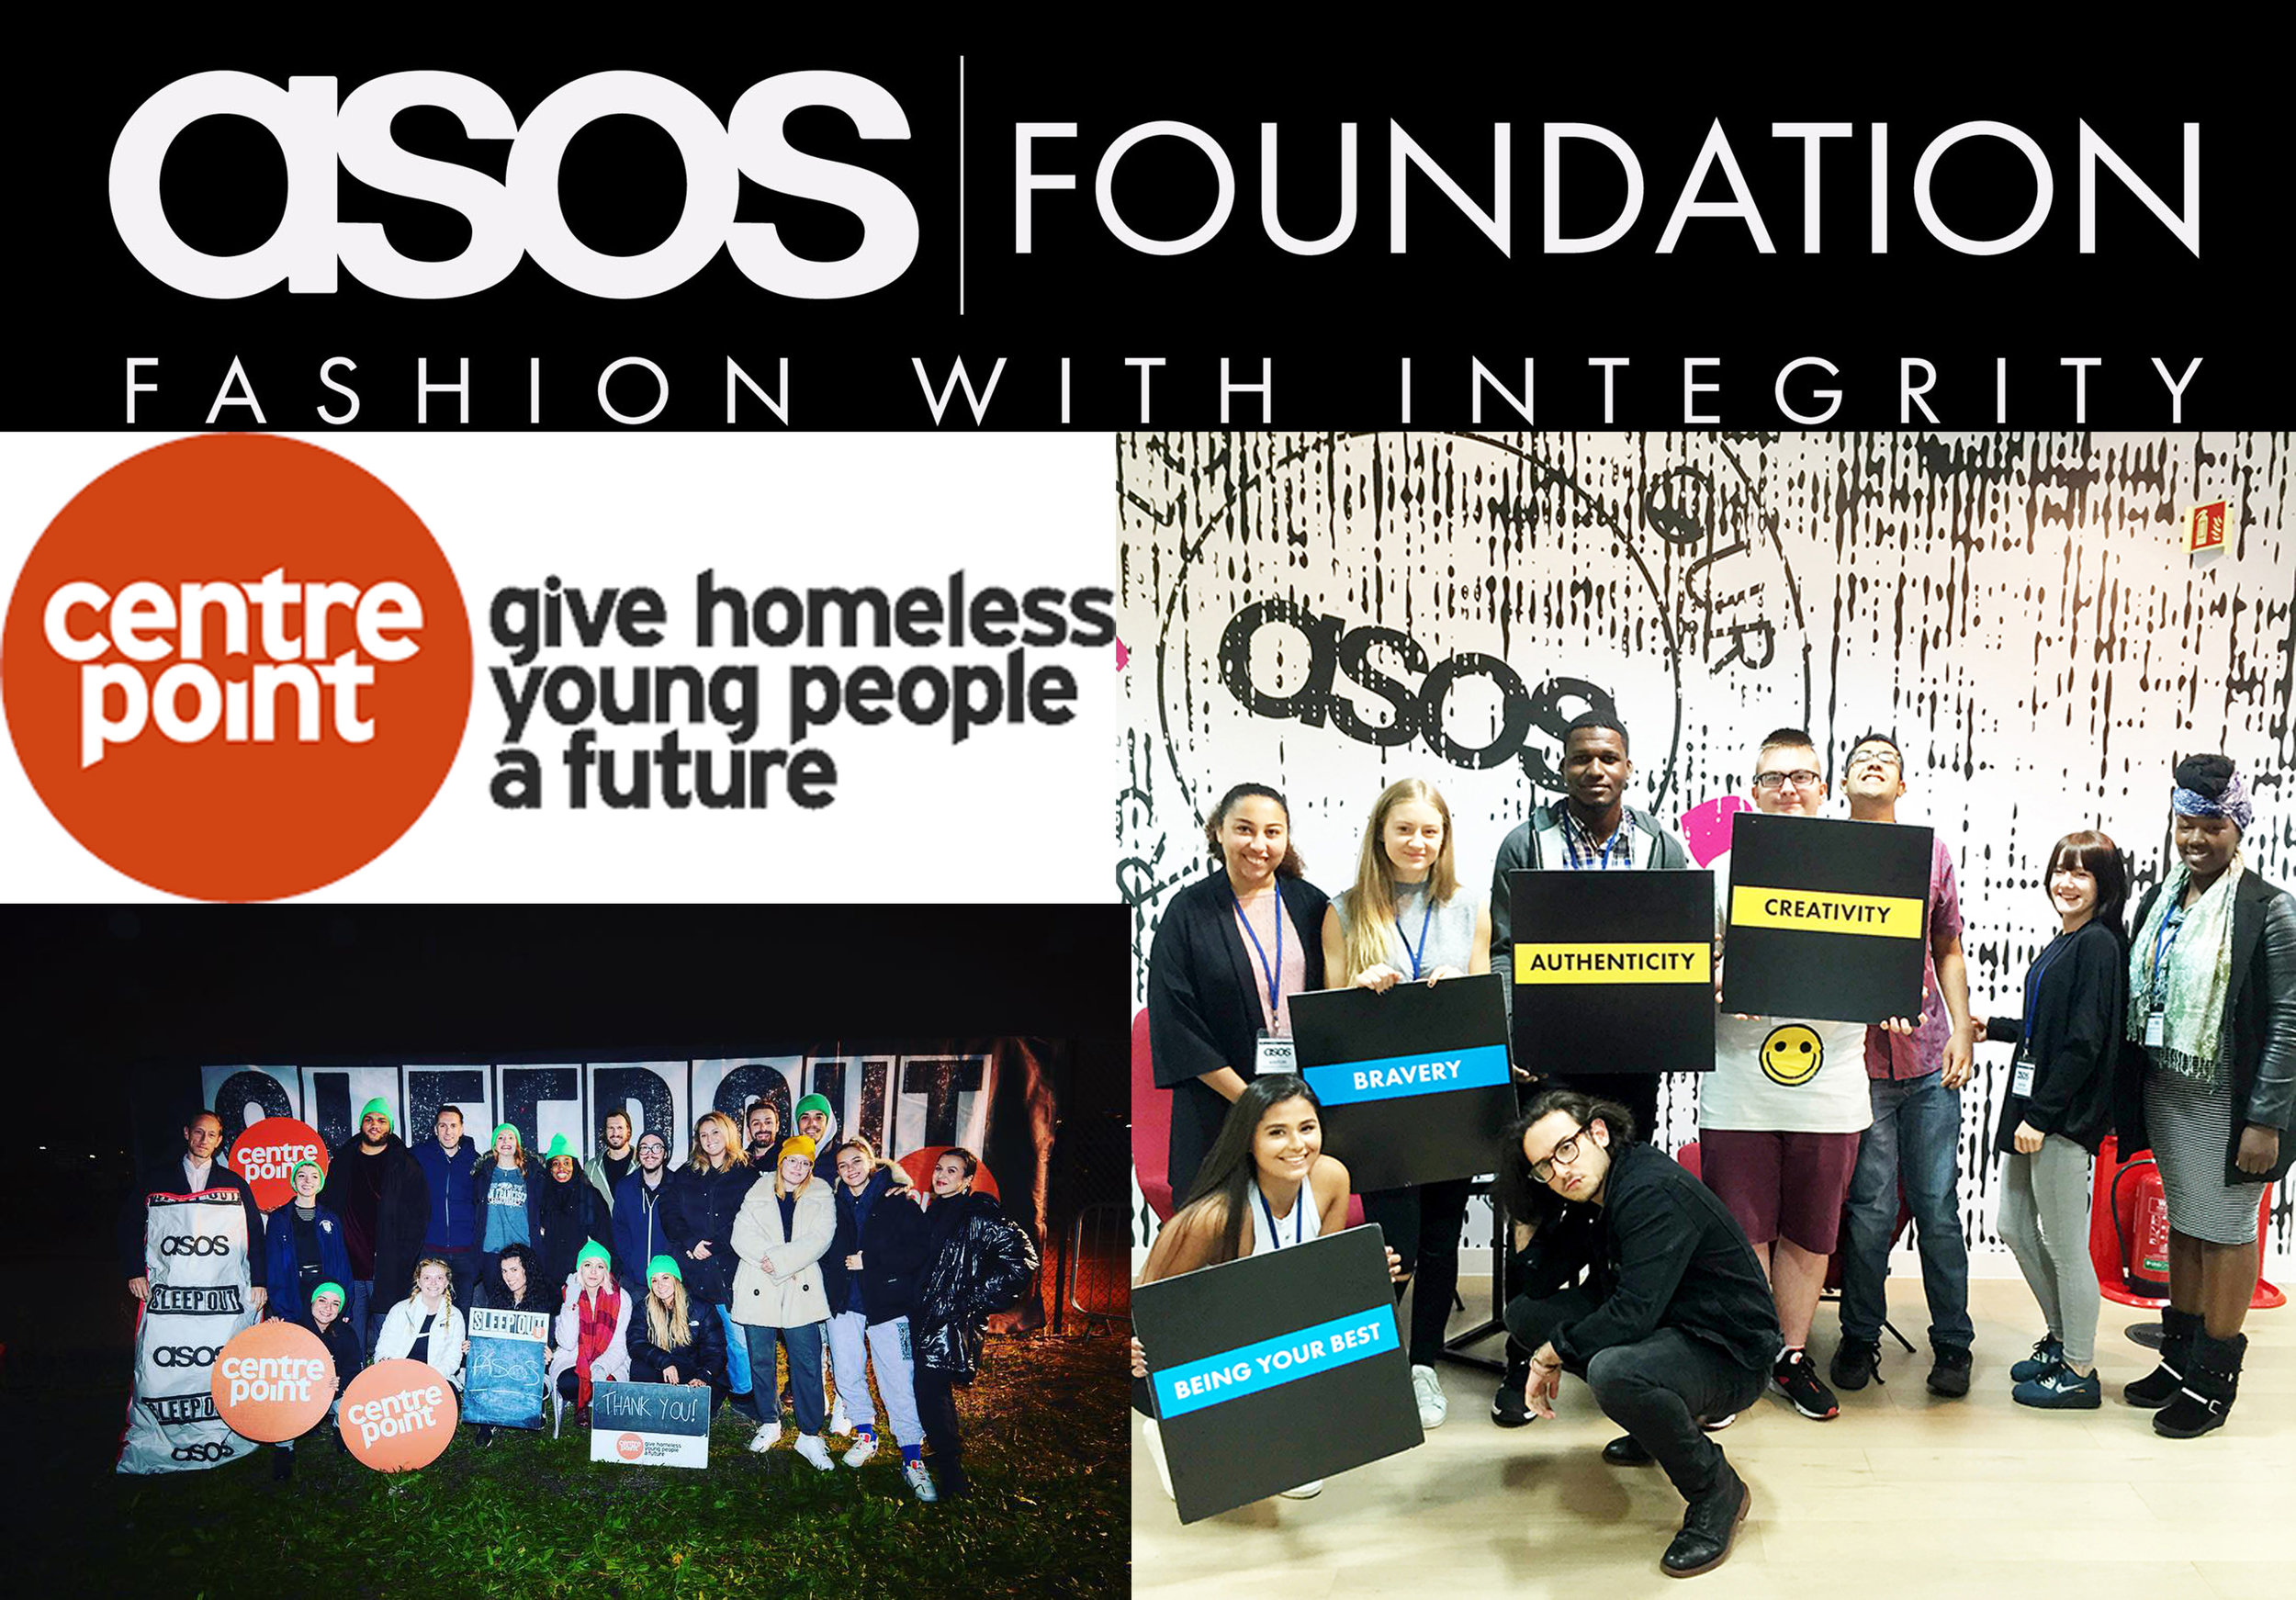 Sep 1st, 2018  We care about being kind to our planet and the people who live here, and we believe in doing as much as we can to help those in need. As an independent supplier brand, we make regular donations to charity, and this year we've donated over 900 watches and sunglasses to ASOS FOUNDATION!  Click on the image to check out more about this amazing organisation!